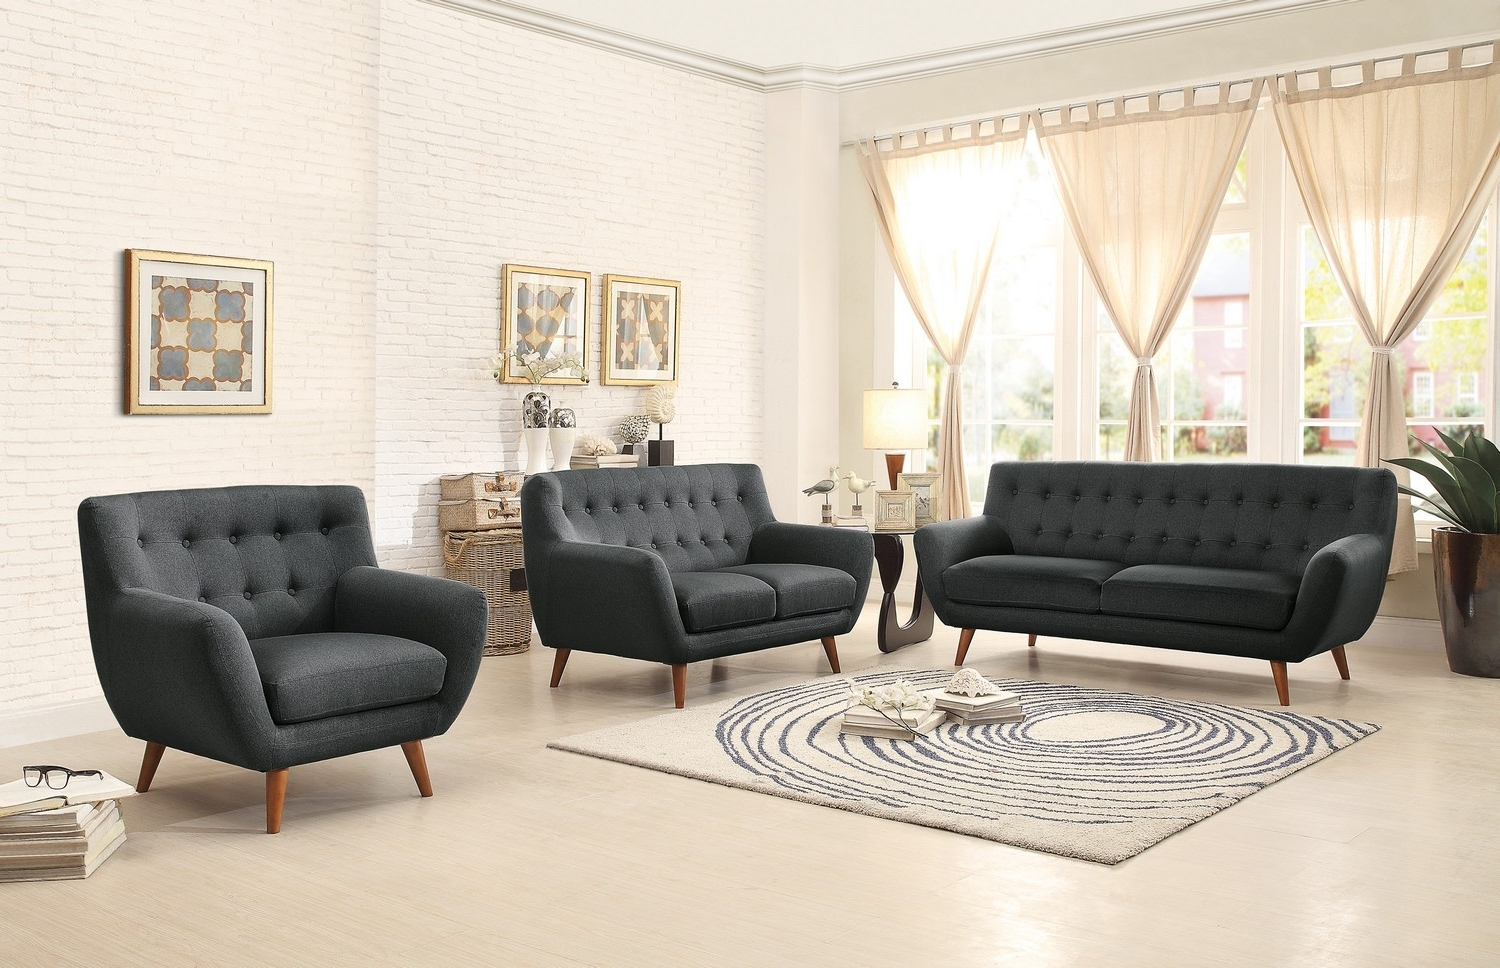 Sectional Sofas At Aarons Intended For 2017 Sofa : Gray Sofa Set Light Grey Sofa Aarons Sectionals Sofas (View 7 of 15)